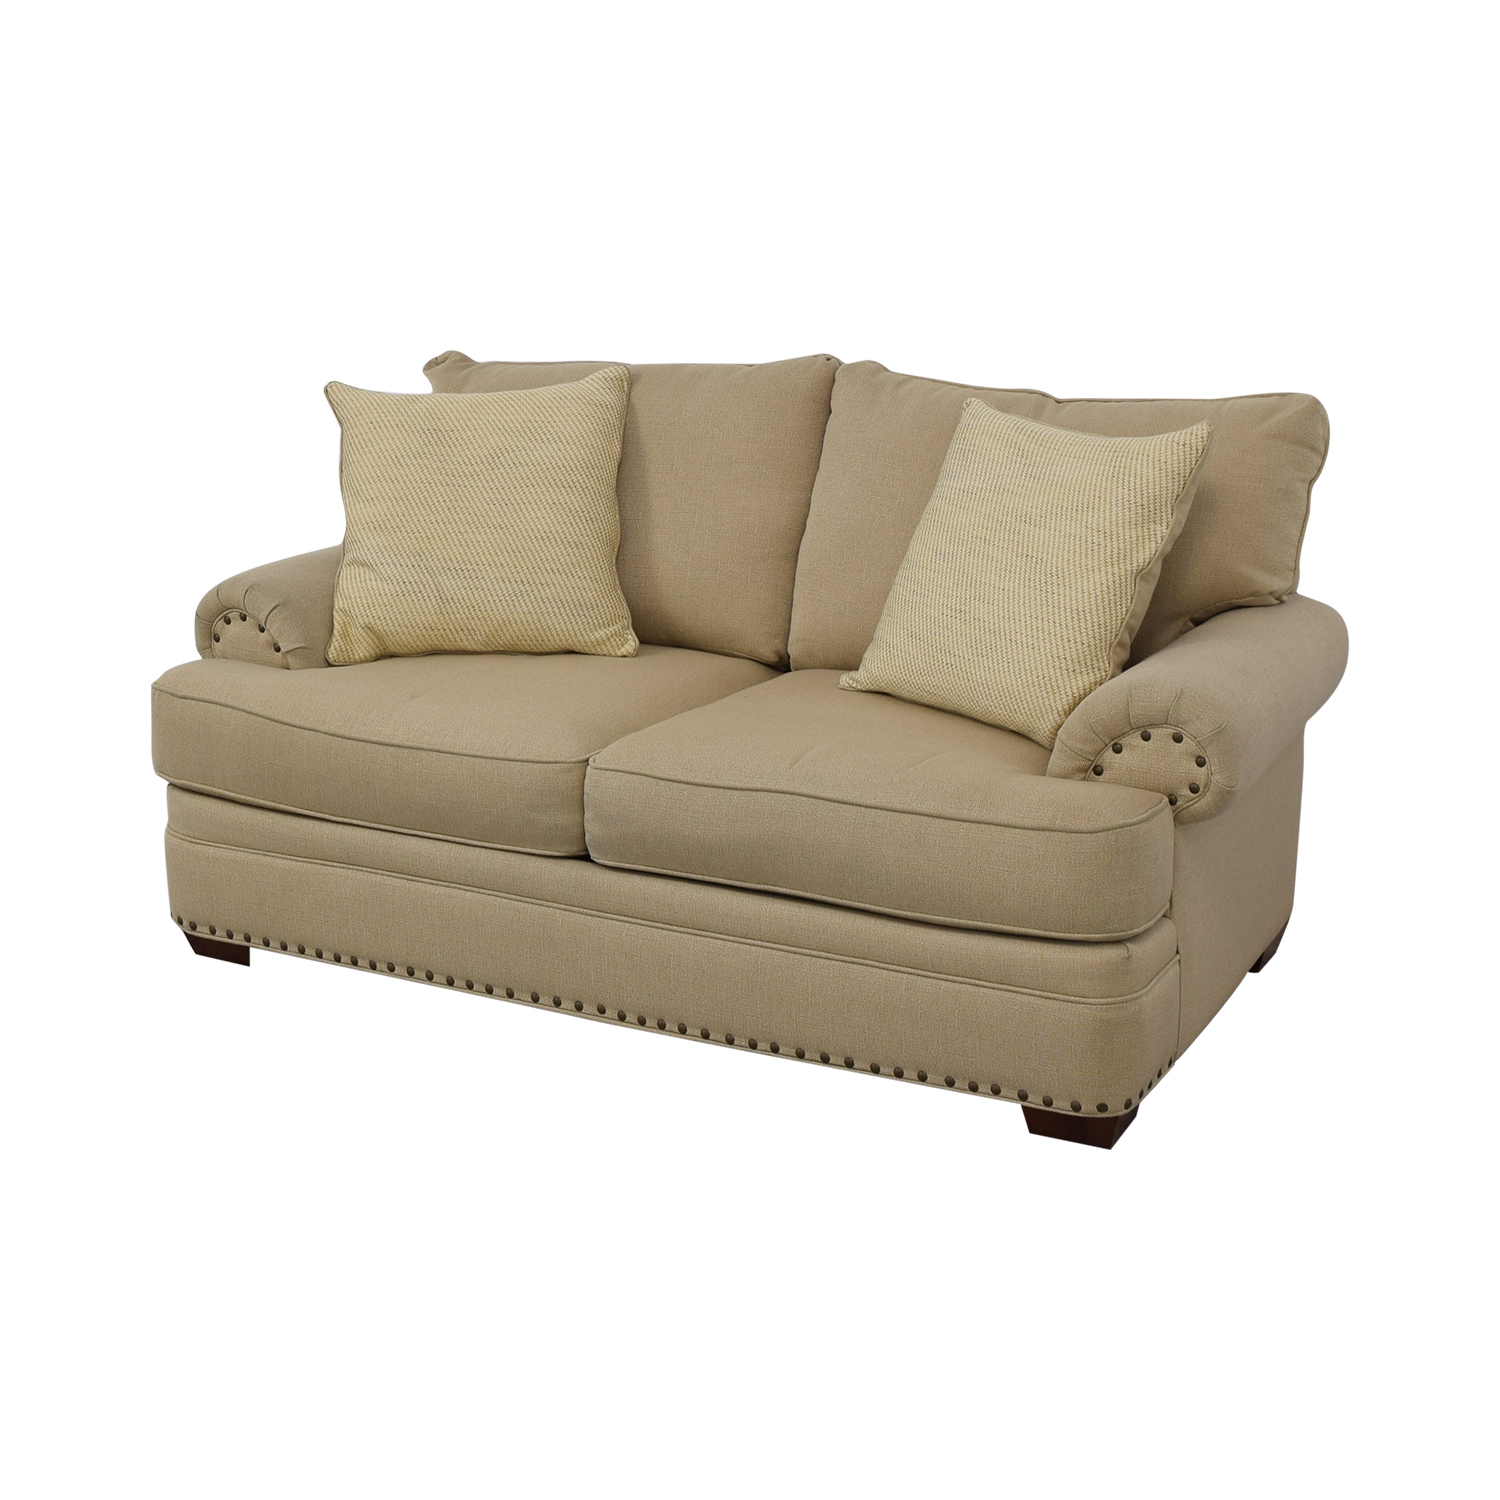 Havertys Havertys Oatmeal Jillian Loveseat nj